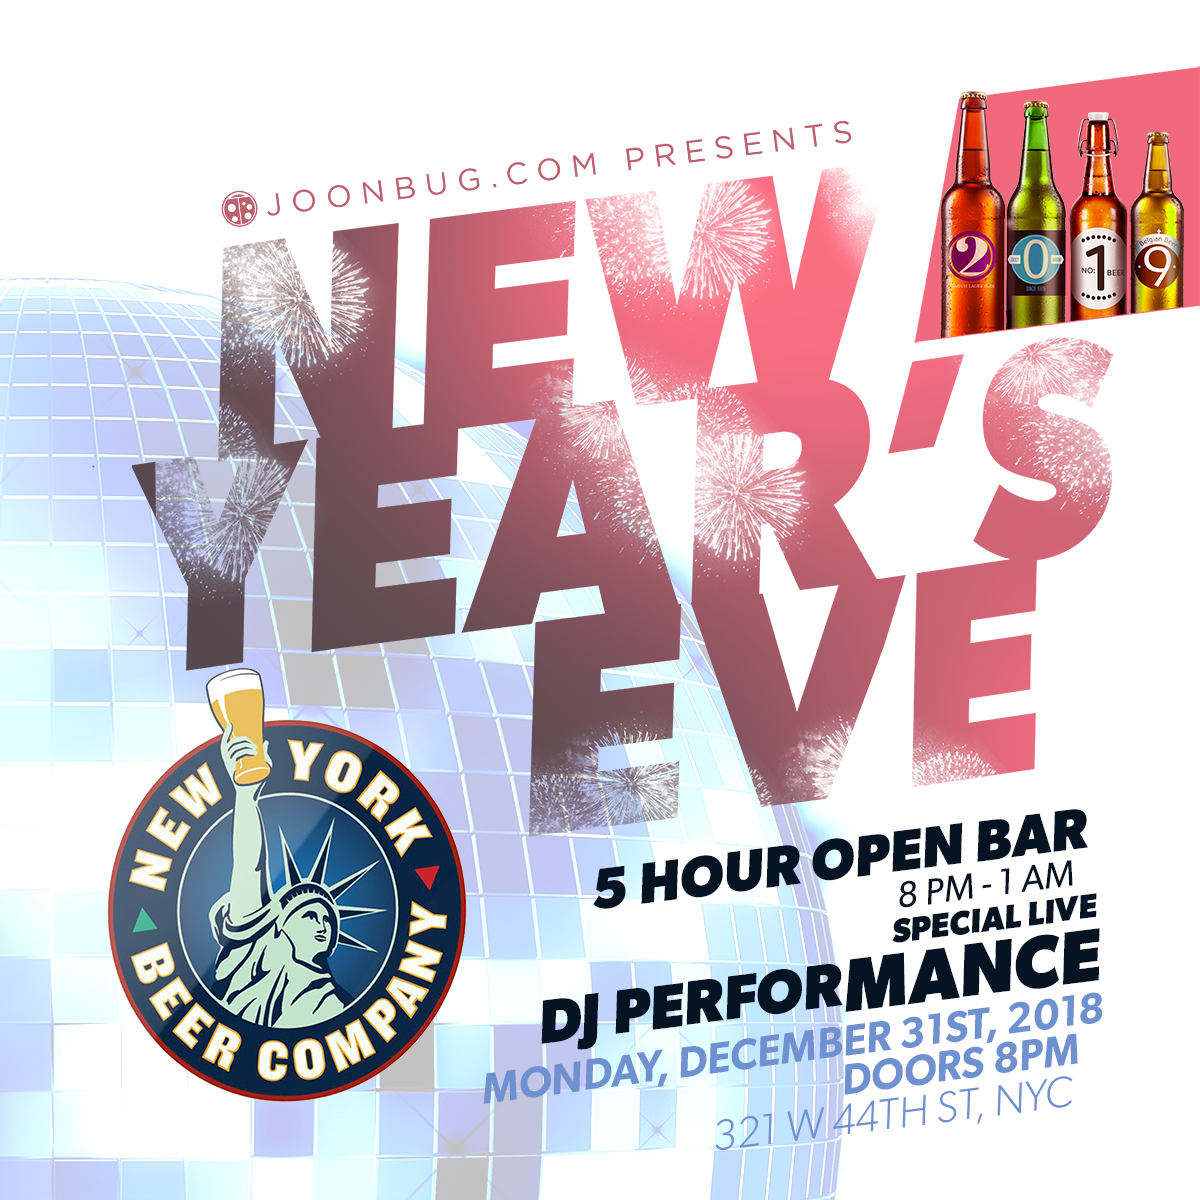 The New York Beer Company New Years Flyer